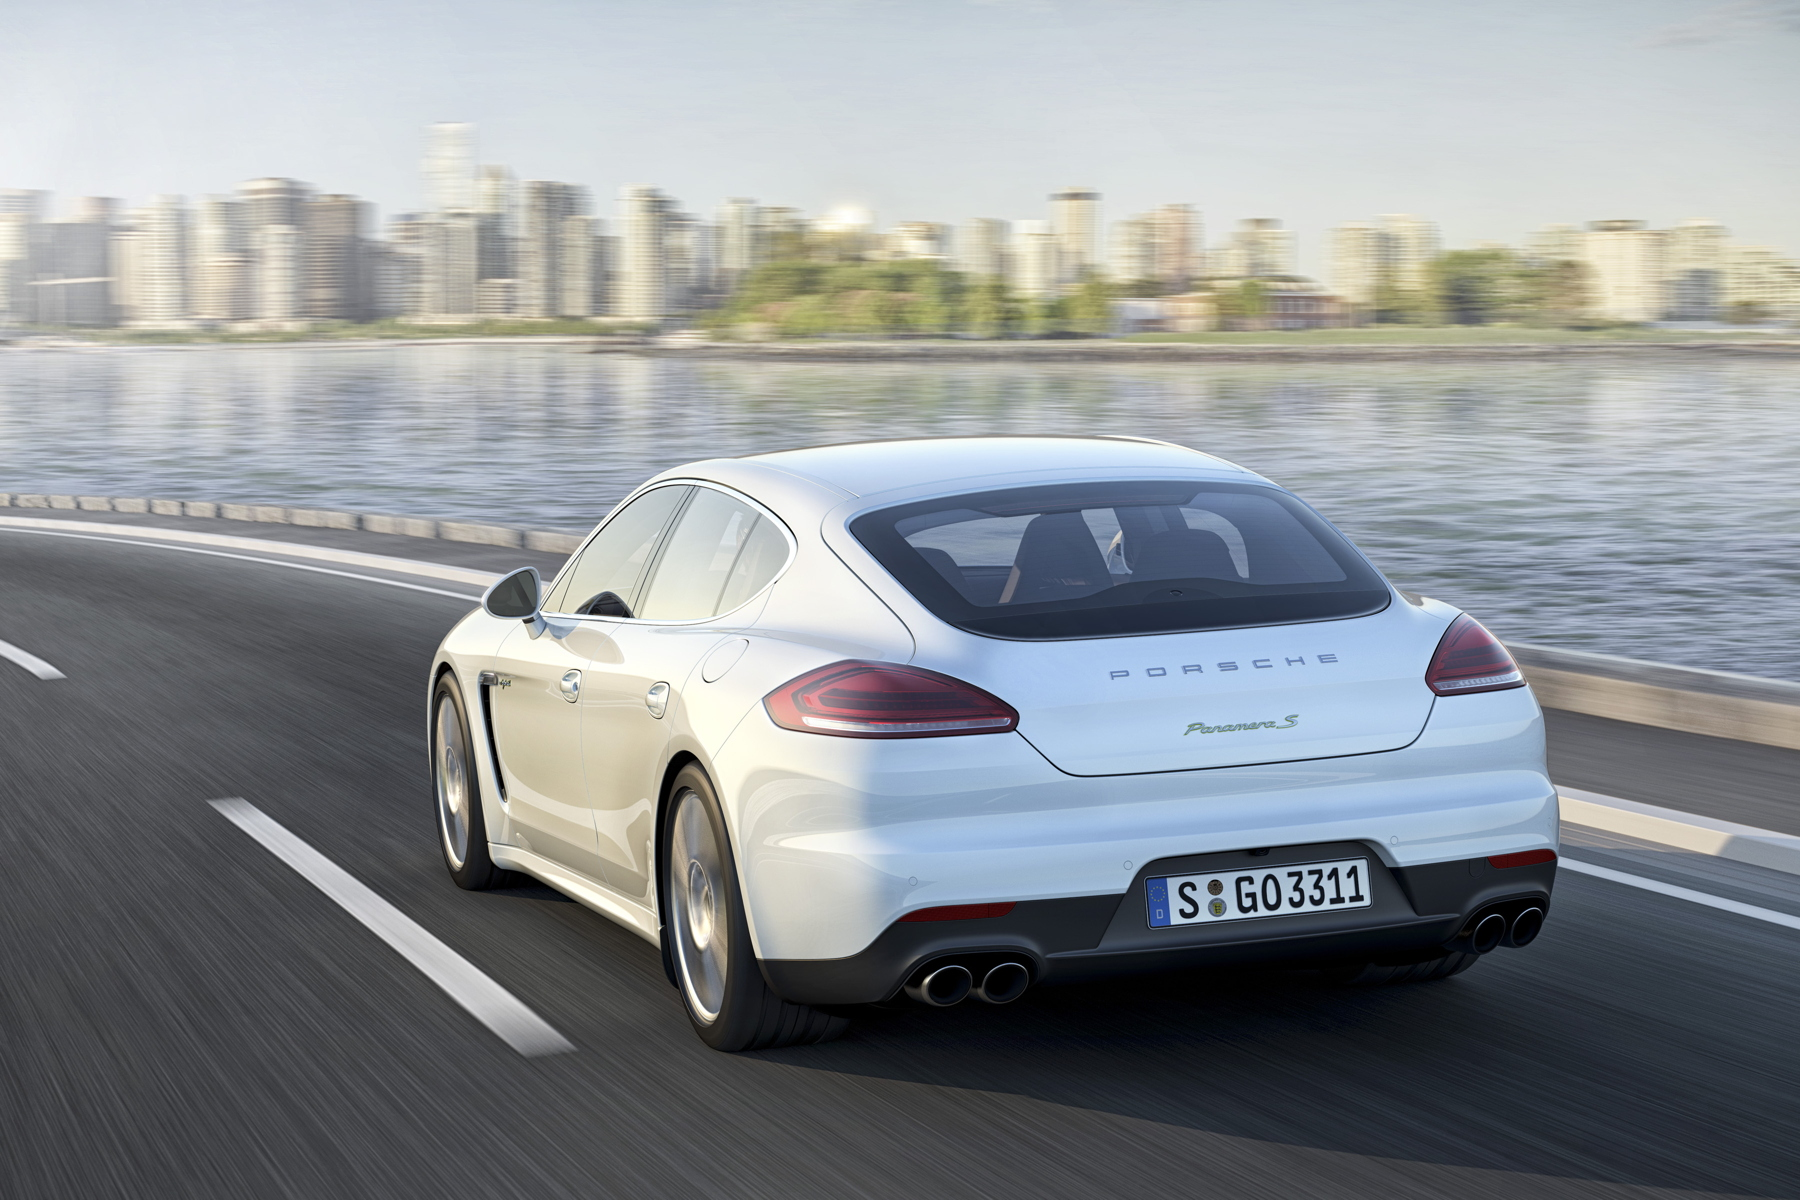 The electric motor's seamlessness has impressed in the Porsche Panamera S E-Hybrid.